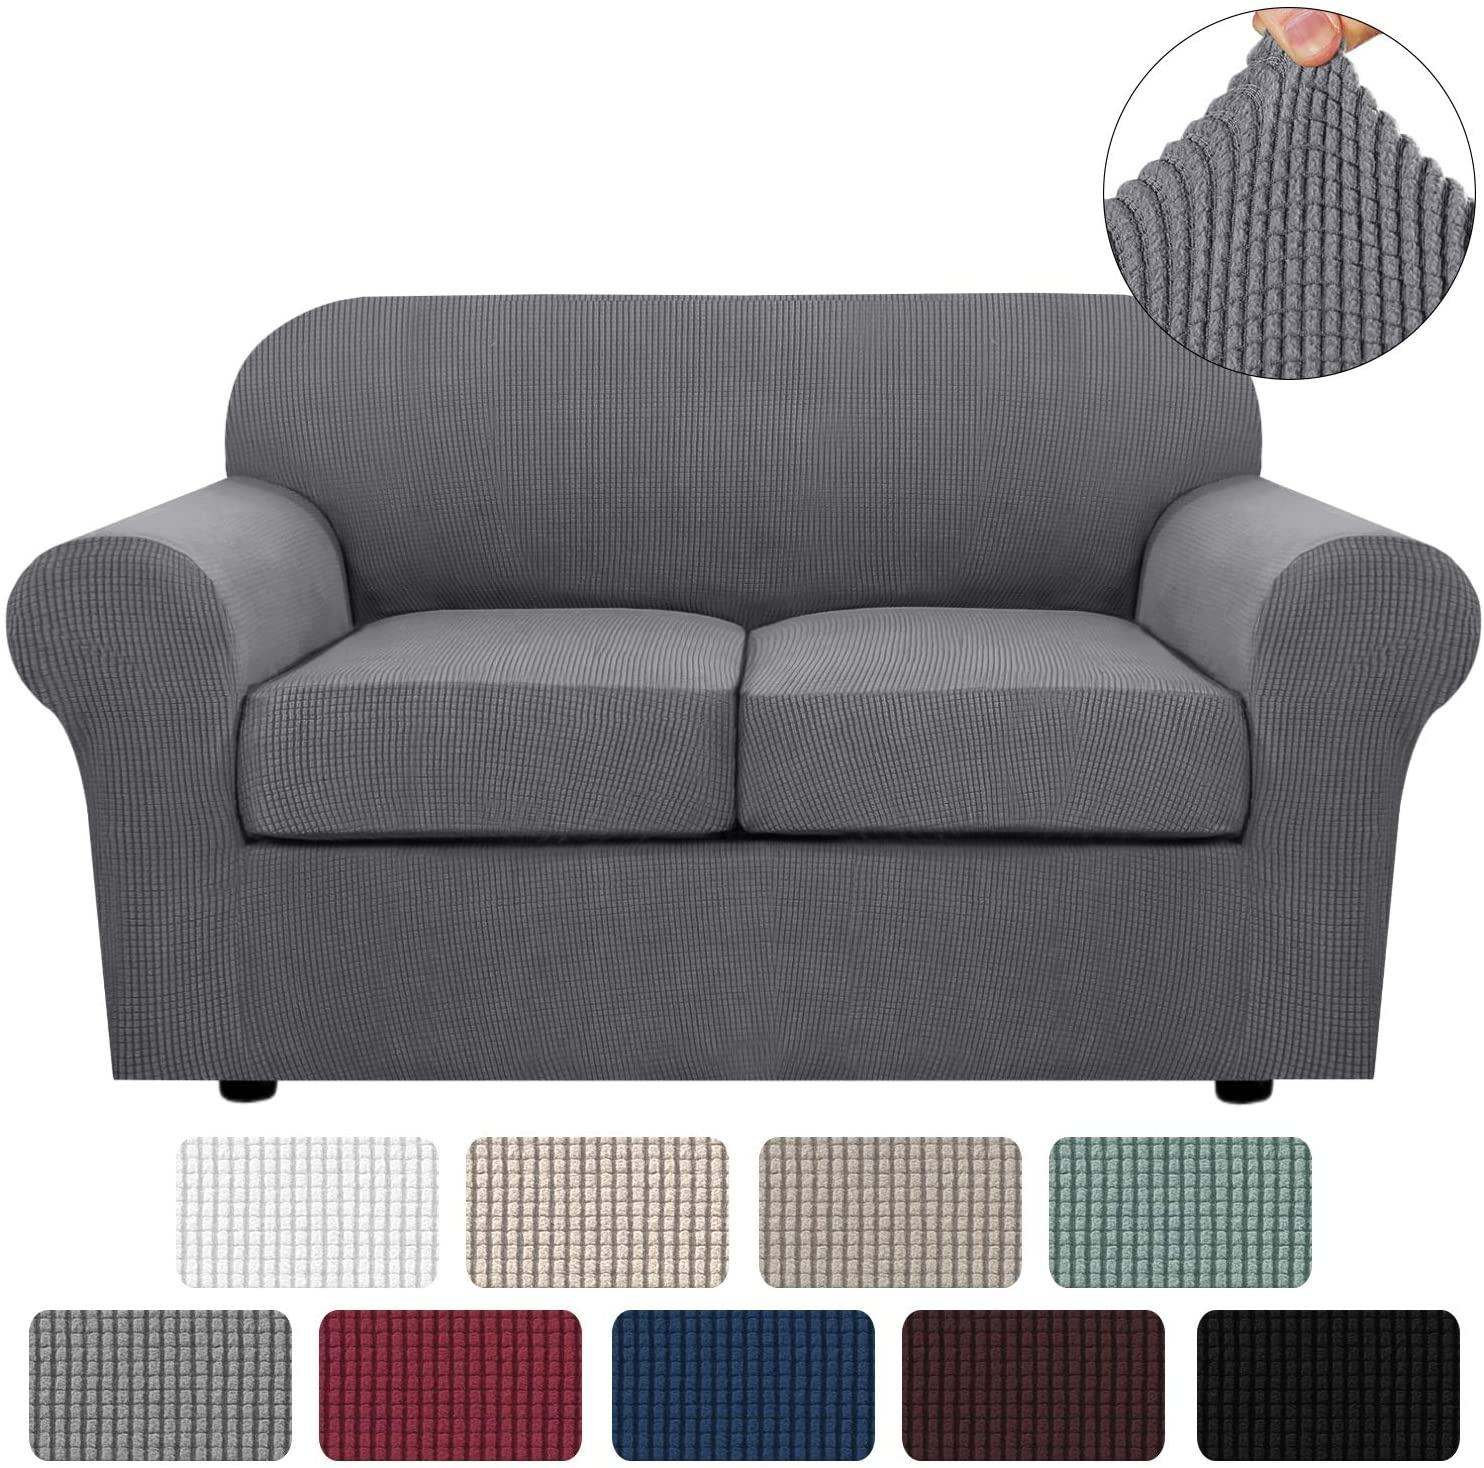 3 Pieces Stretch Sofa Cover With 2 Cushion Covers Loveseat Sofa Slipcover for Living Furniture Covers Sofa